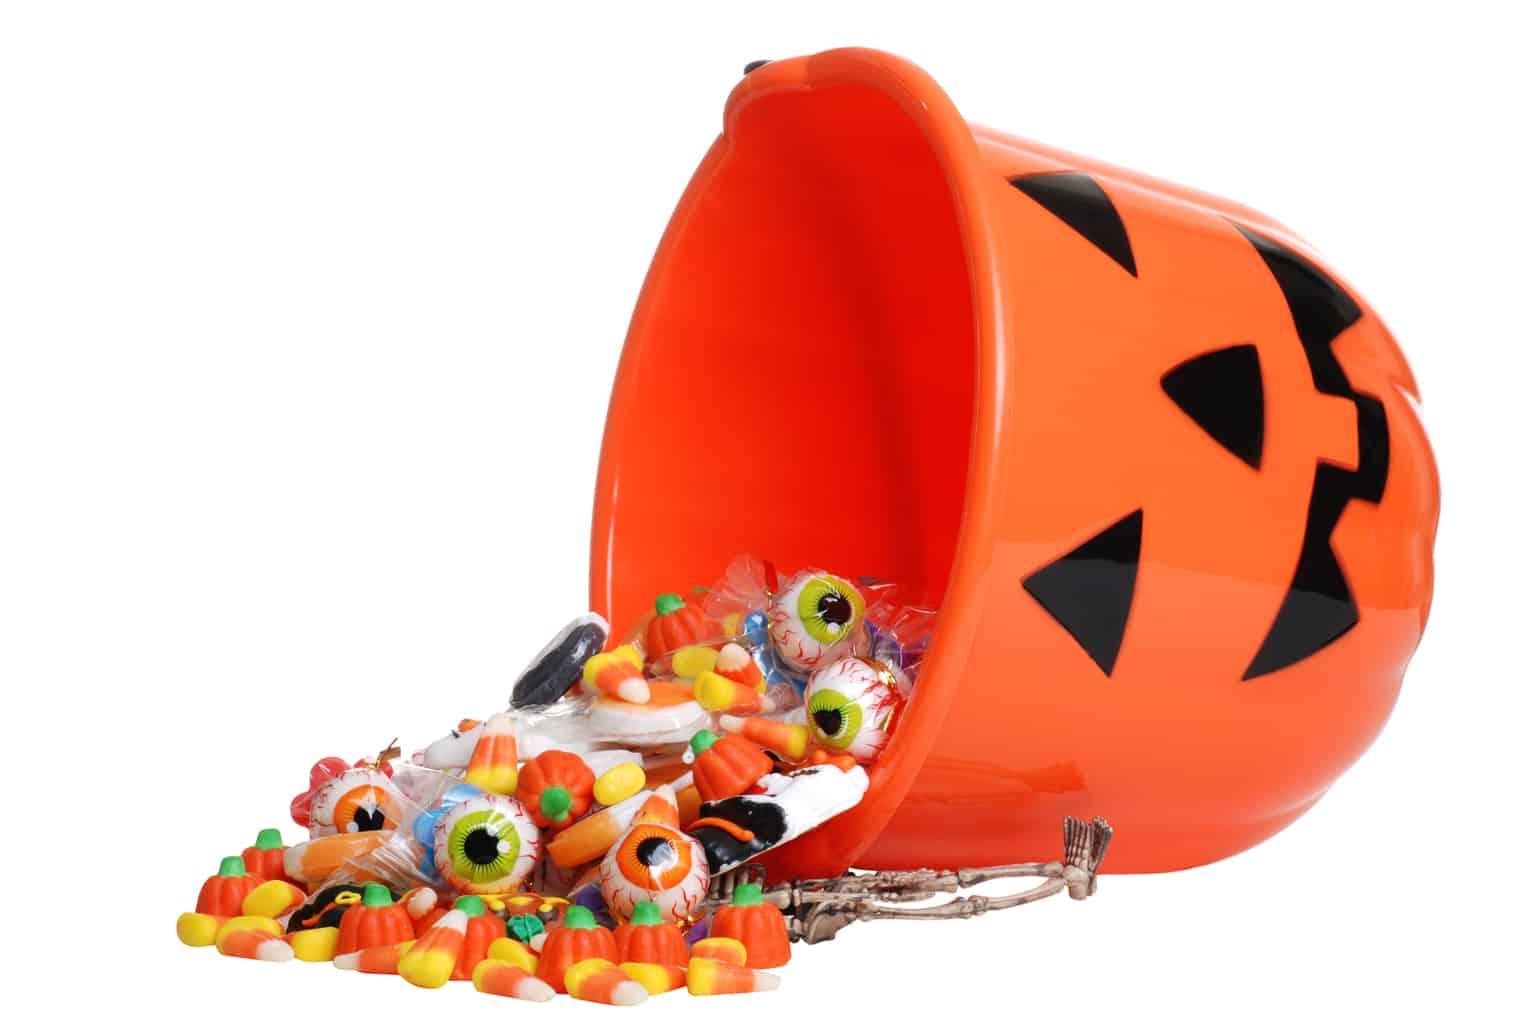 Does Candy Affect How Much You Weigh?